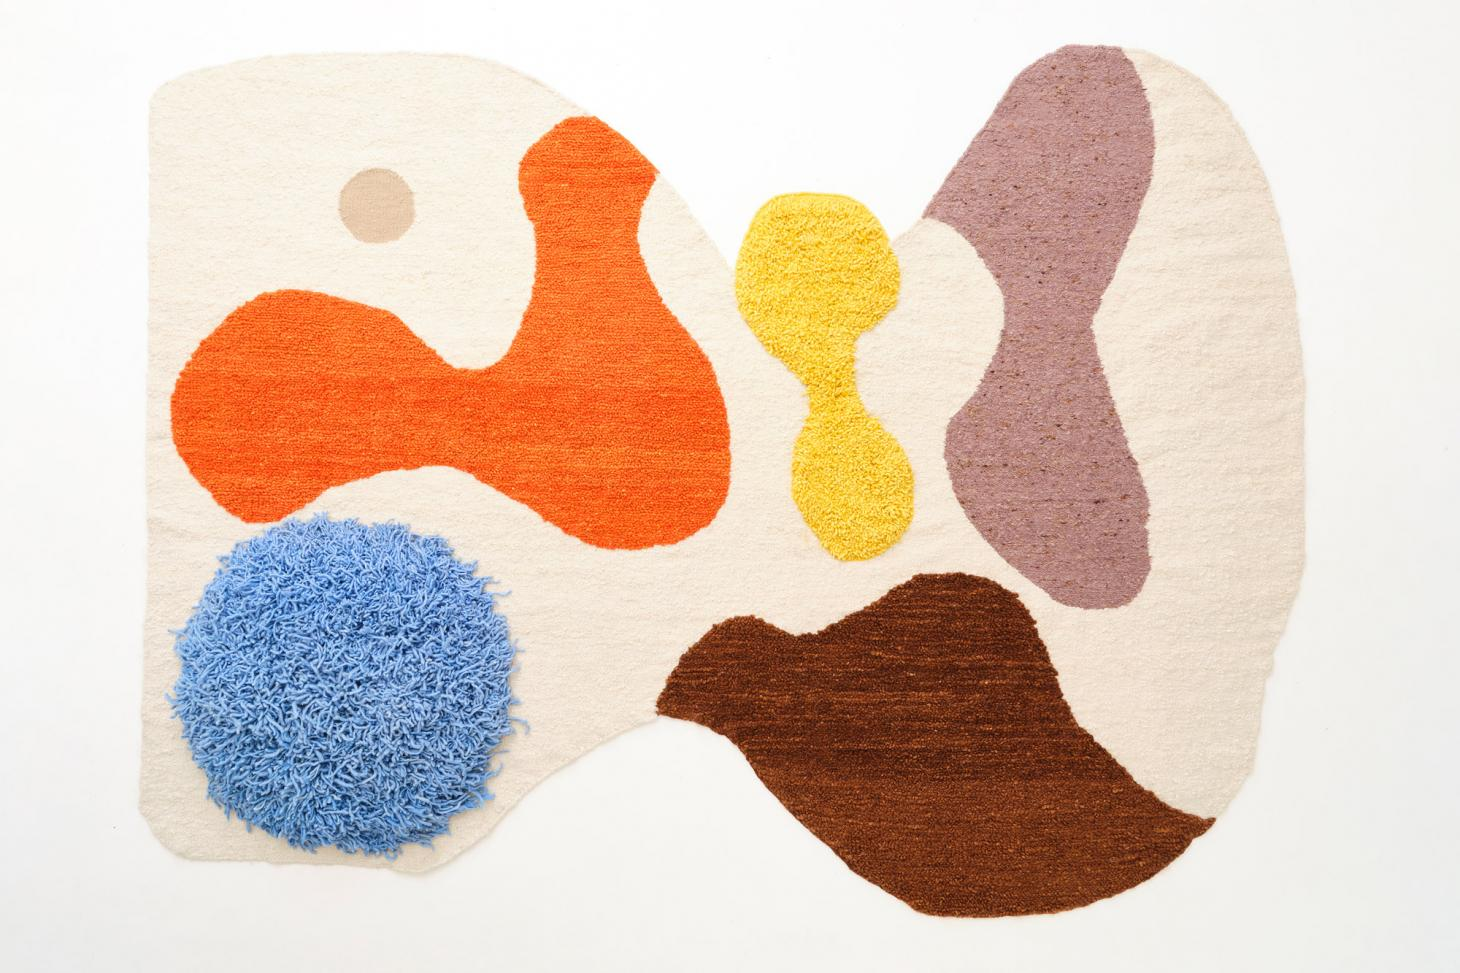 White rug with colourful abstract shapes